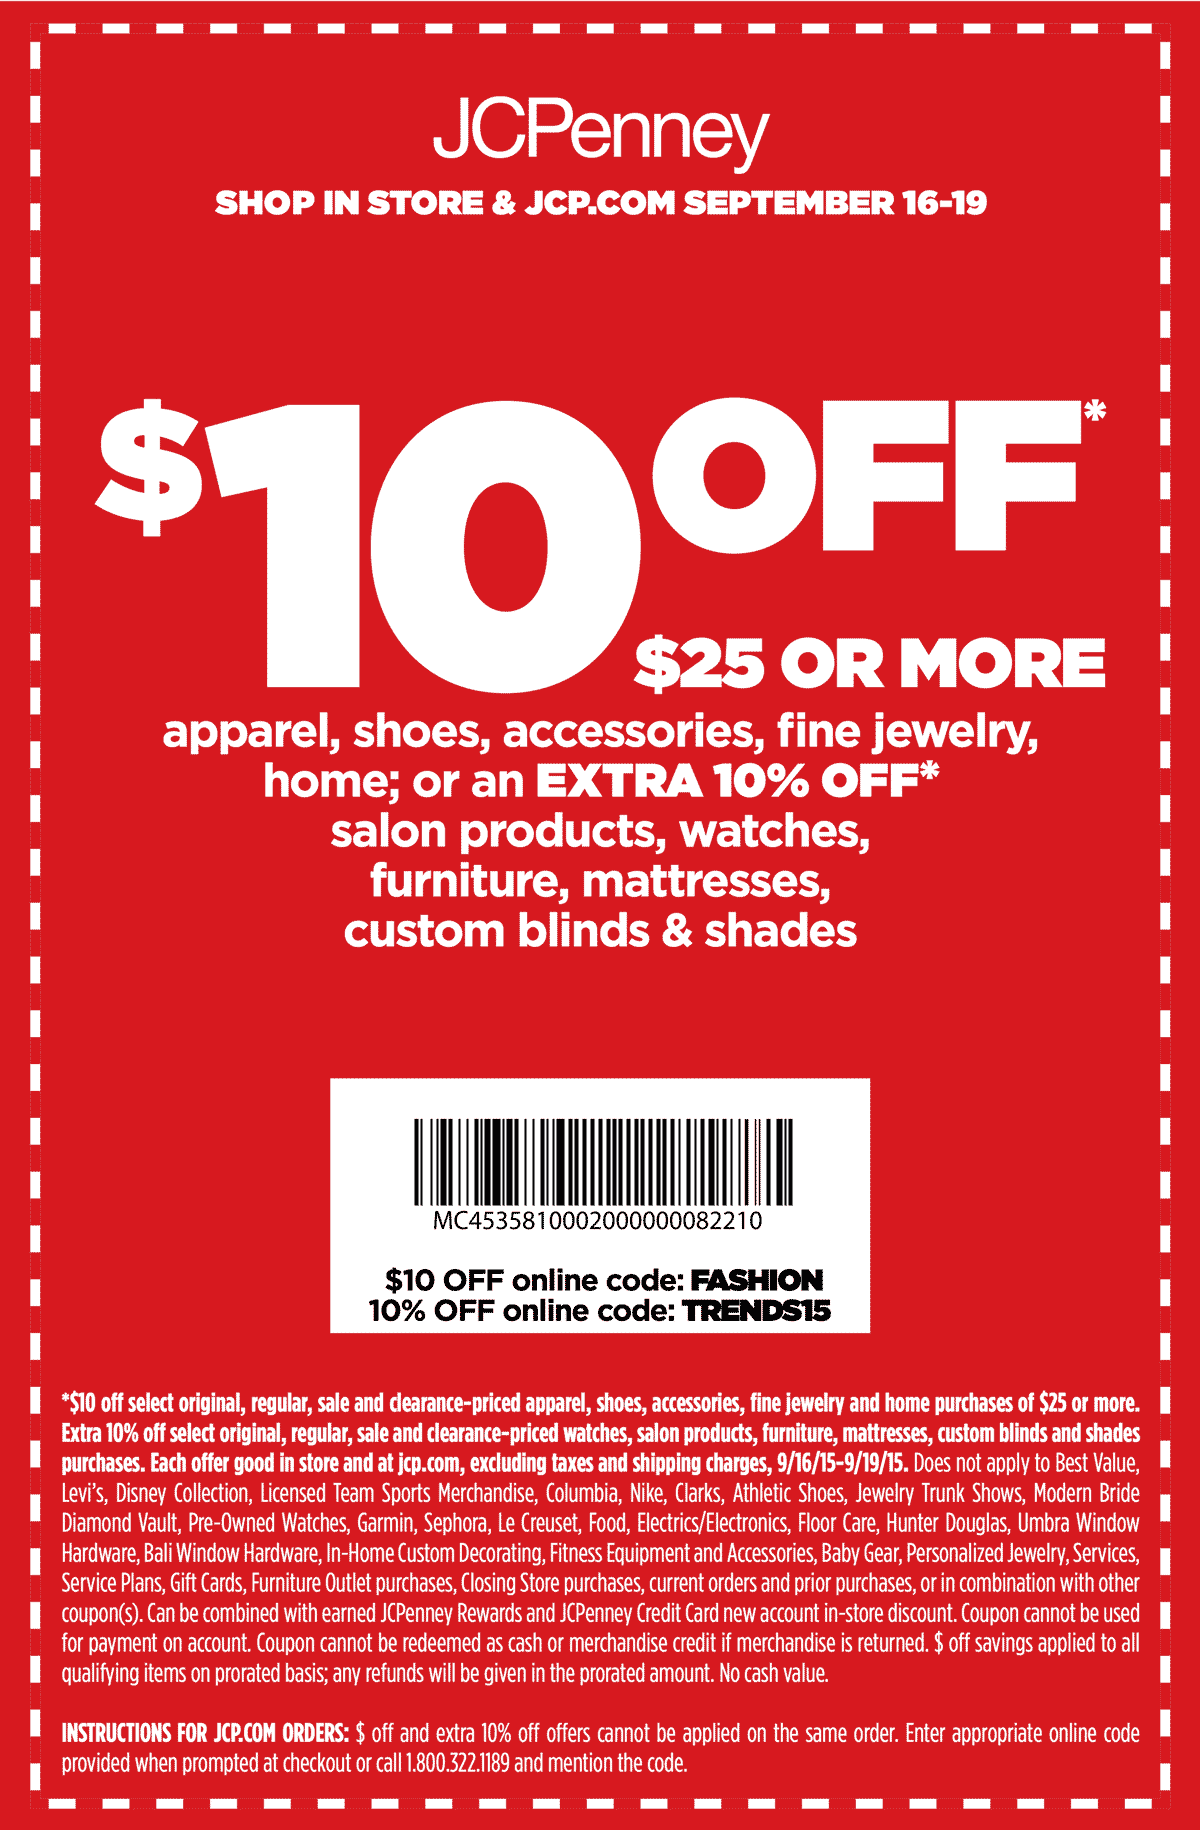 JCPenney Coupon April 2017 $10 off $25 at JCPenney, or online via promo code FASHION